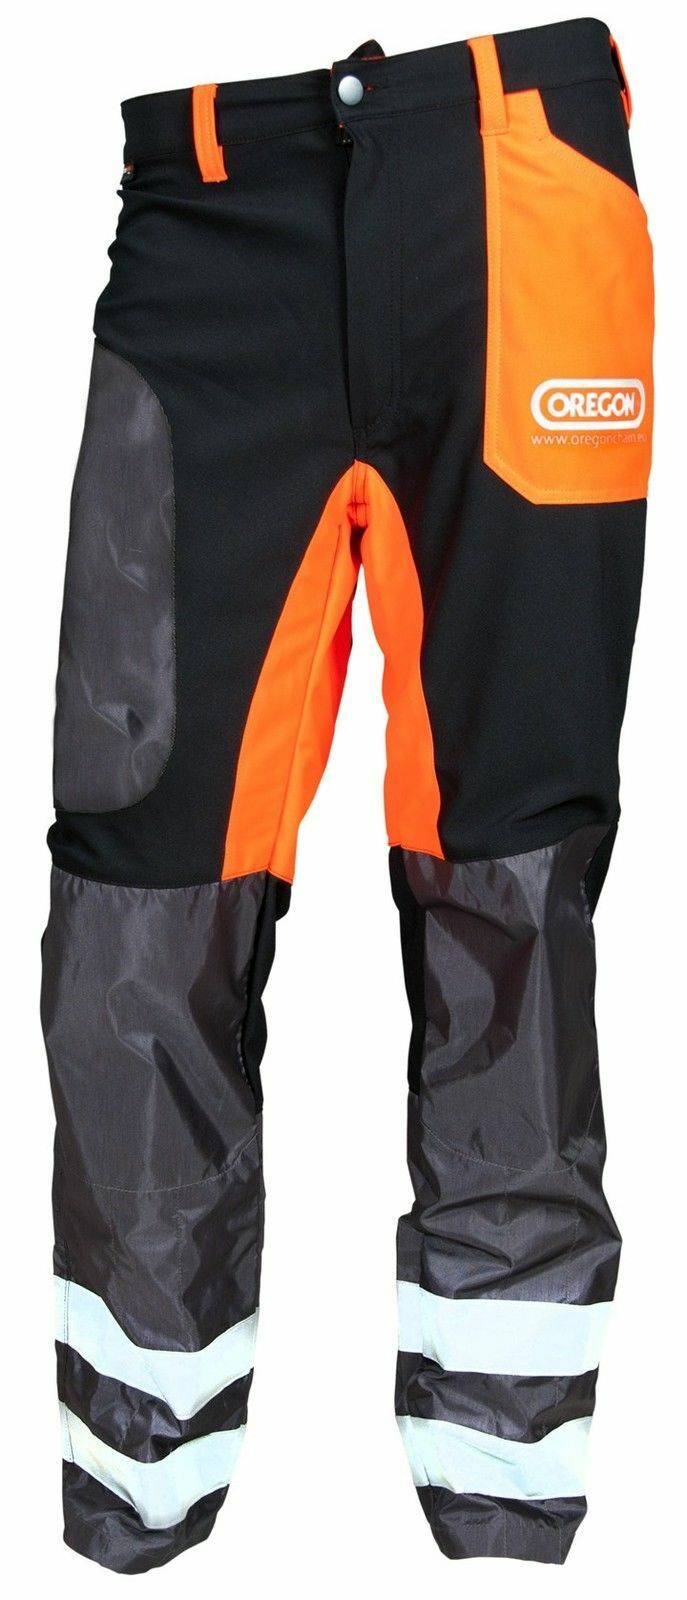 Oregon Brushcutter   Strimmer Projoective Trousers - Forestry Garden S-3XL 295465